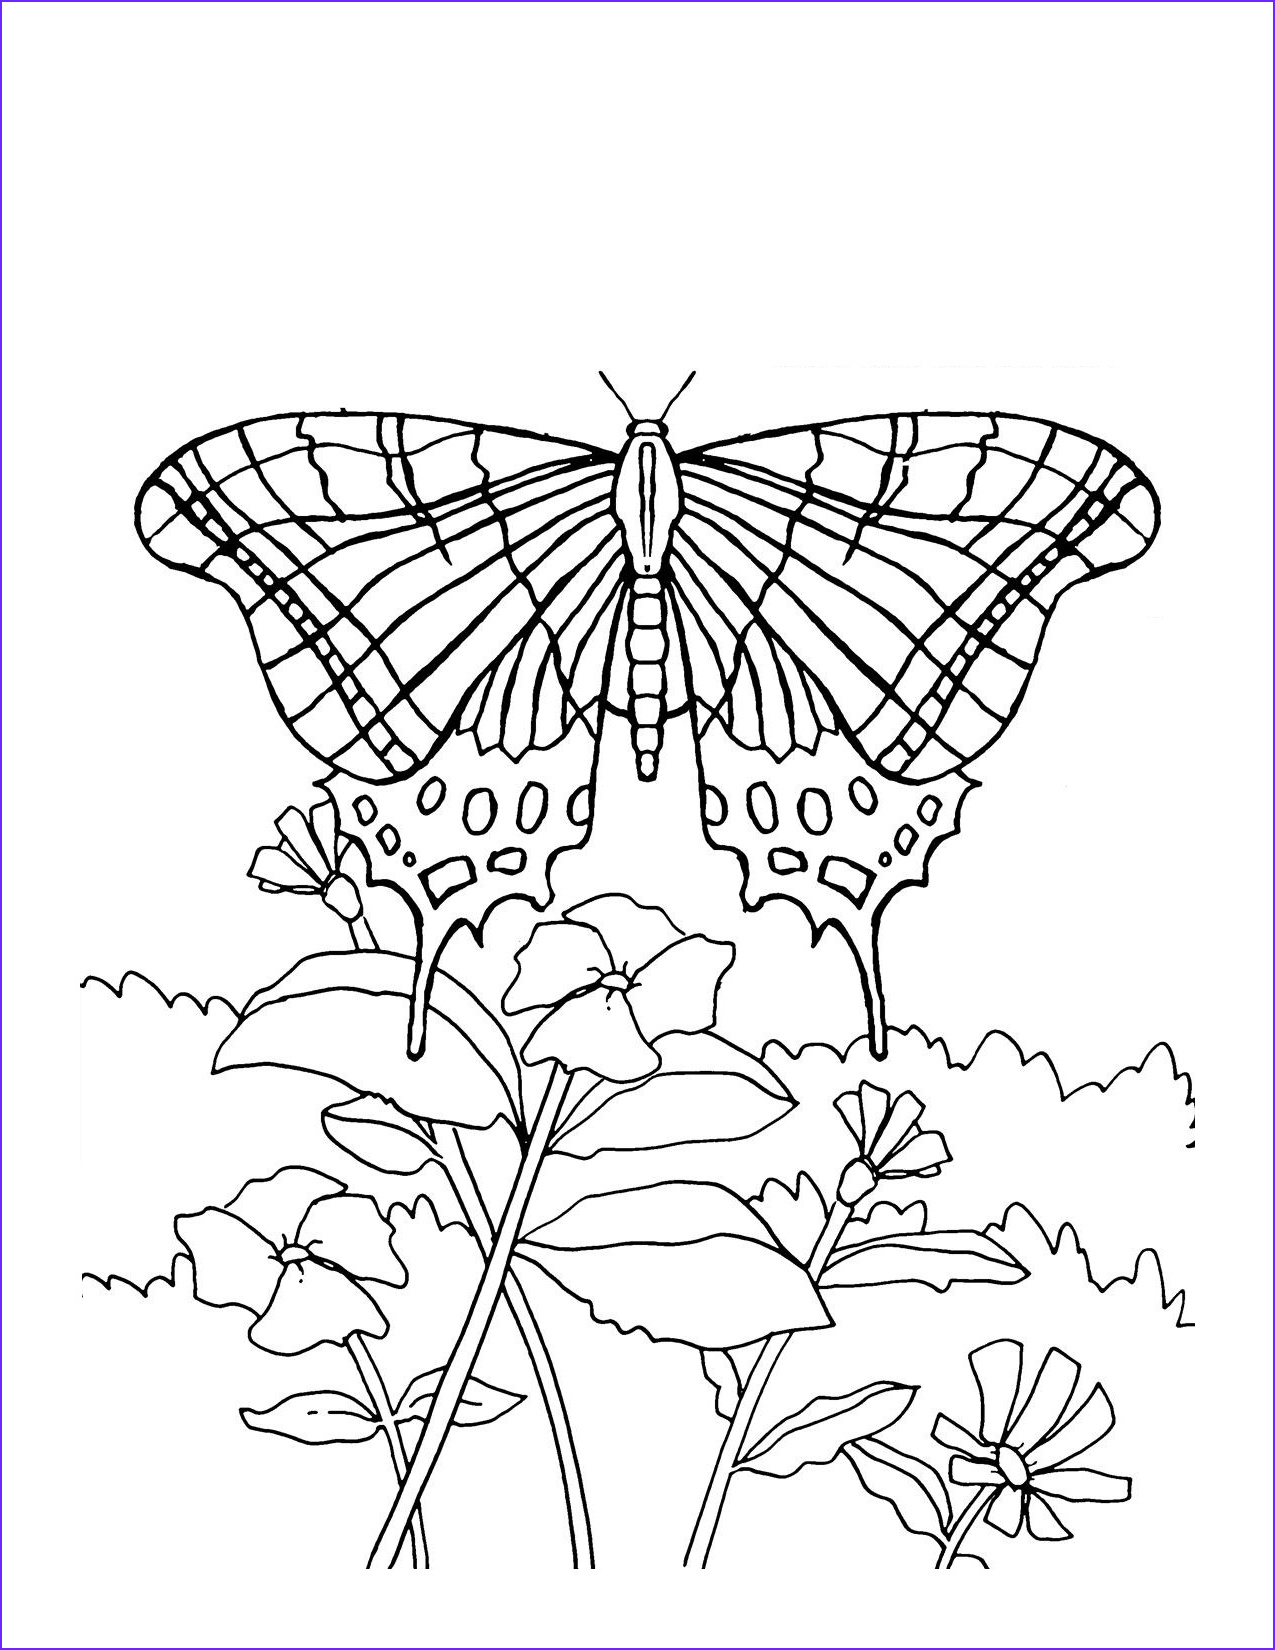 Butterfly Coloring Pages Awesome Photos Free Printable butterfly Coloring Pages for Kids